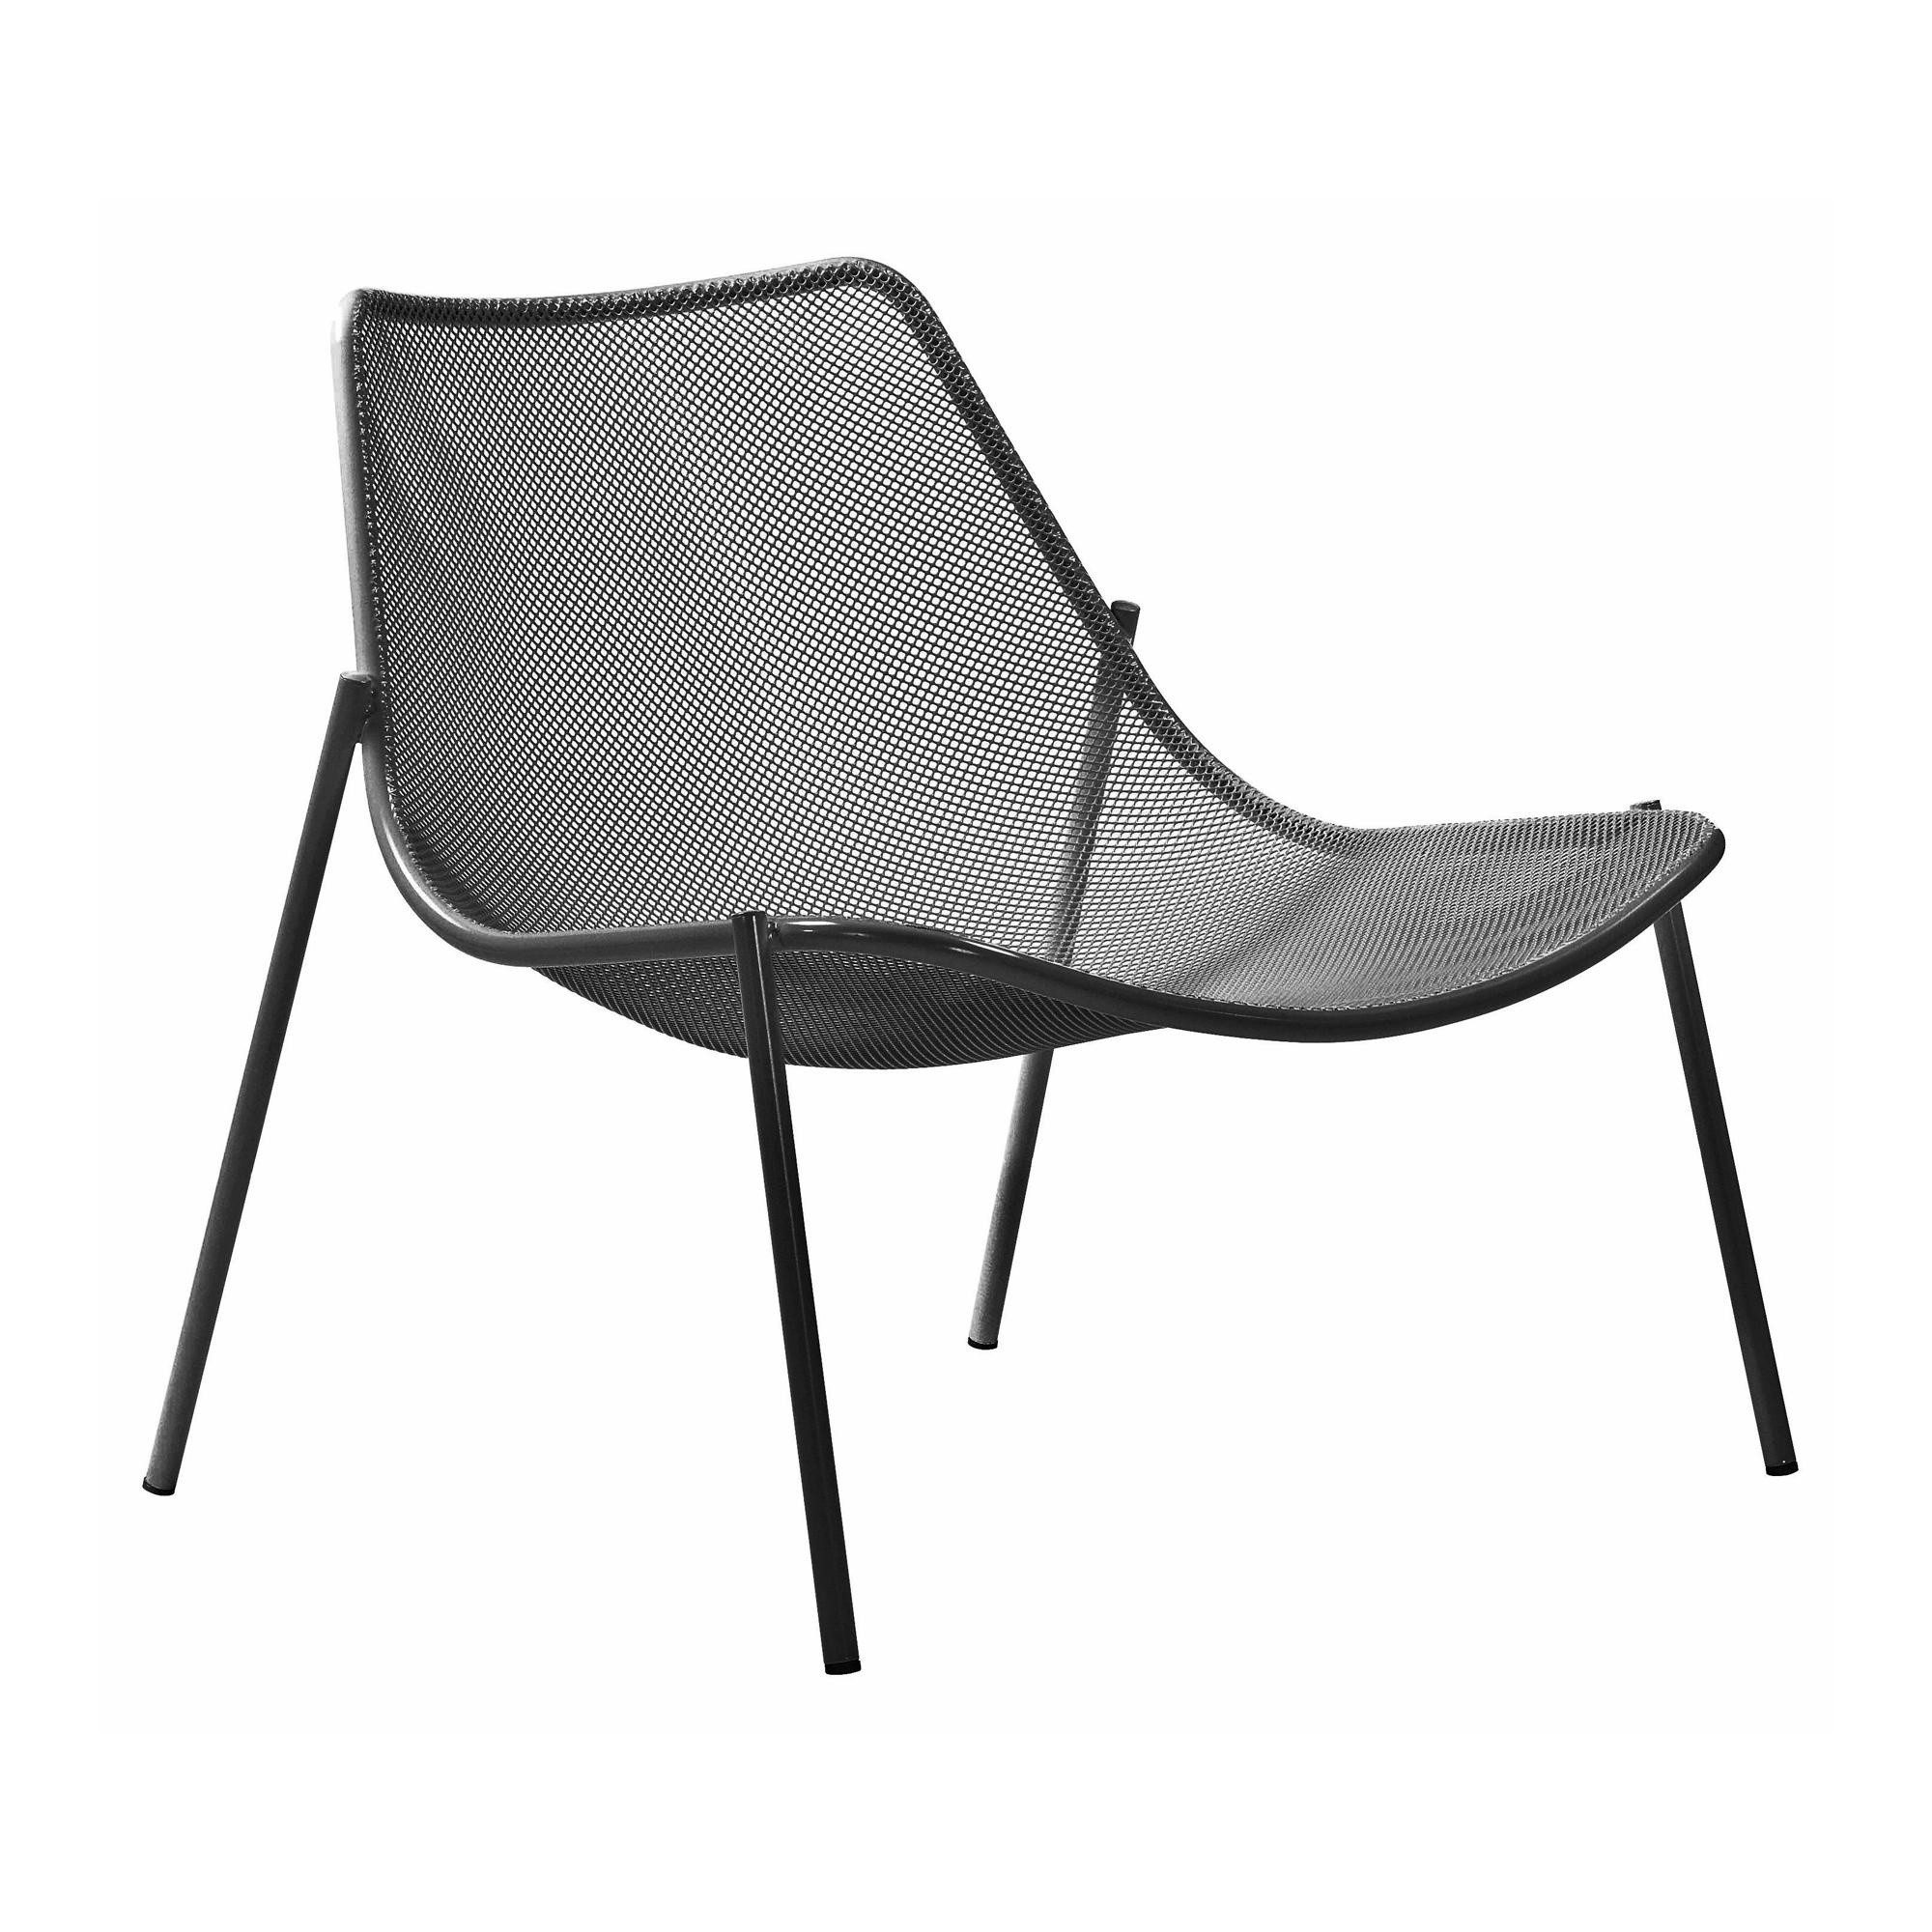 Emu   Round Outdoor Lounge Chair   White/powder Coated/WxHxD 92x84x87cm